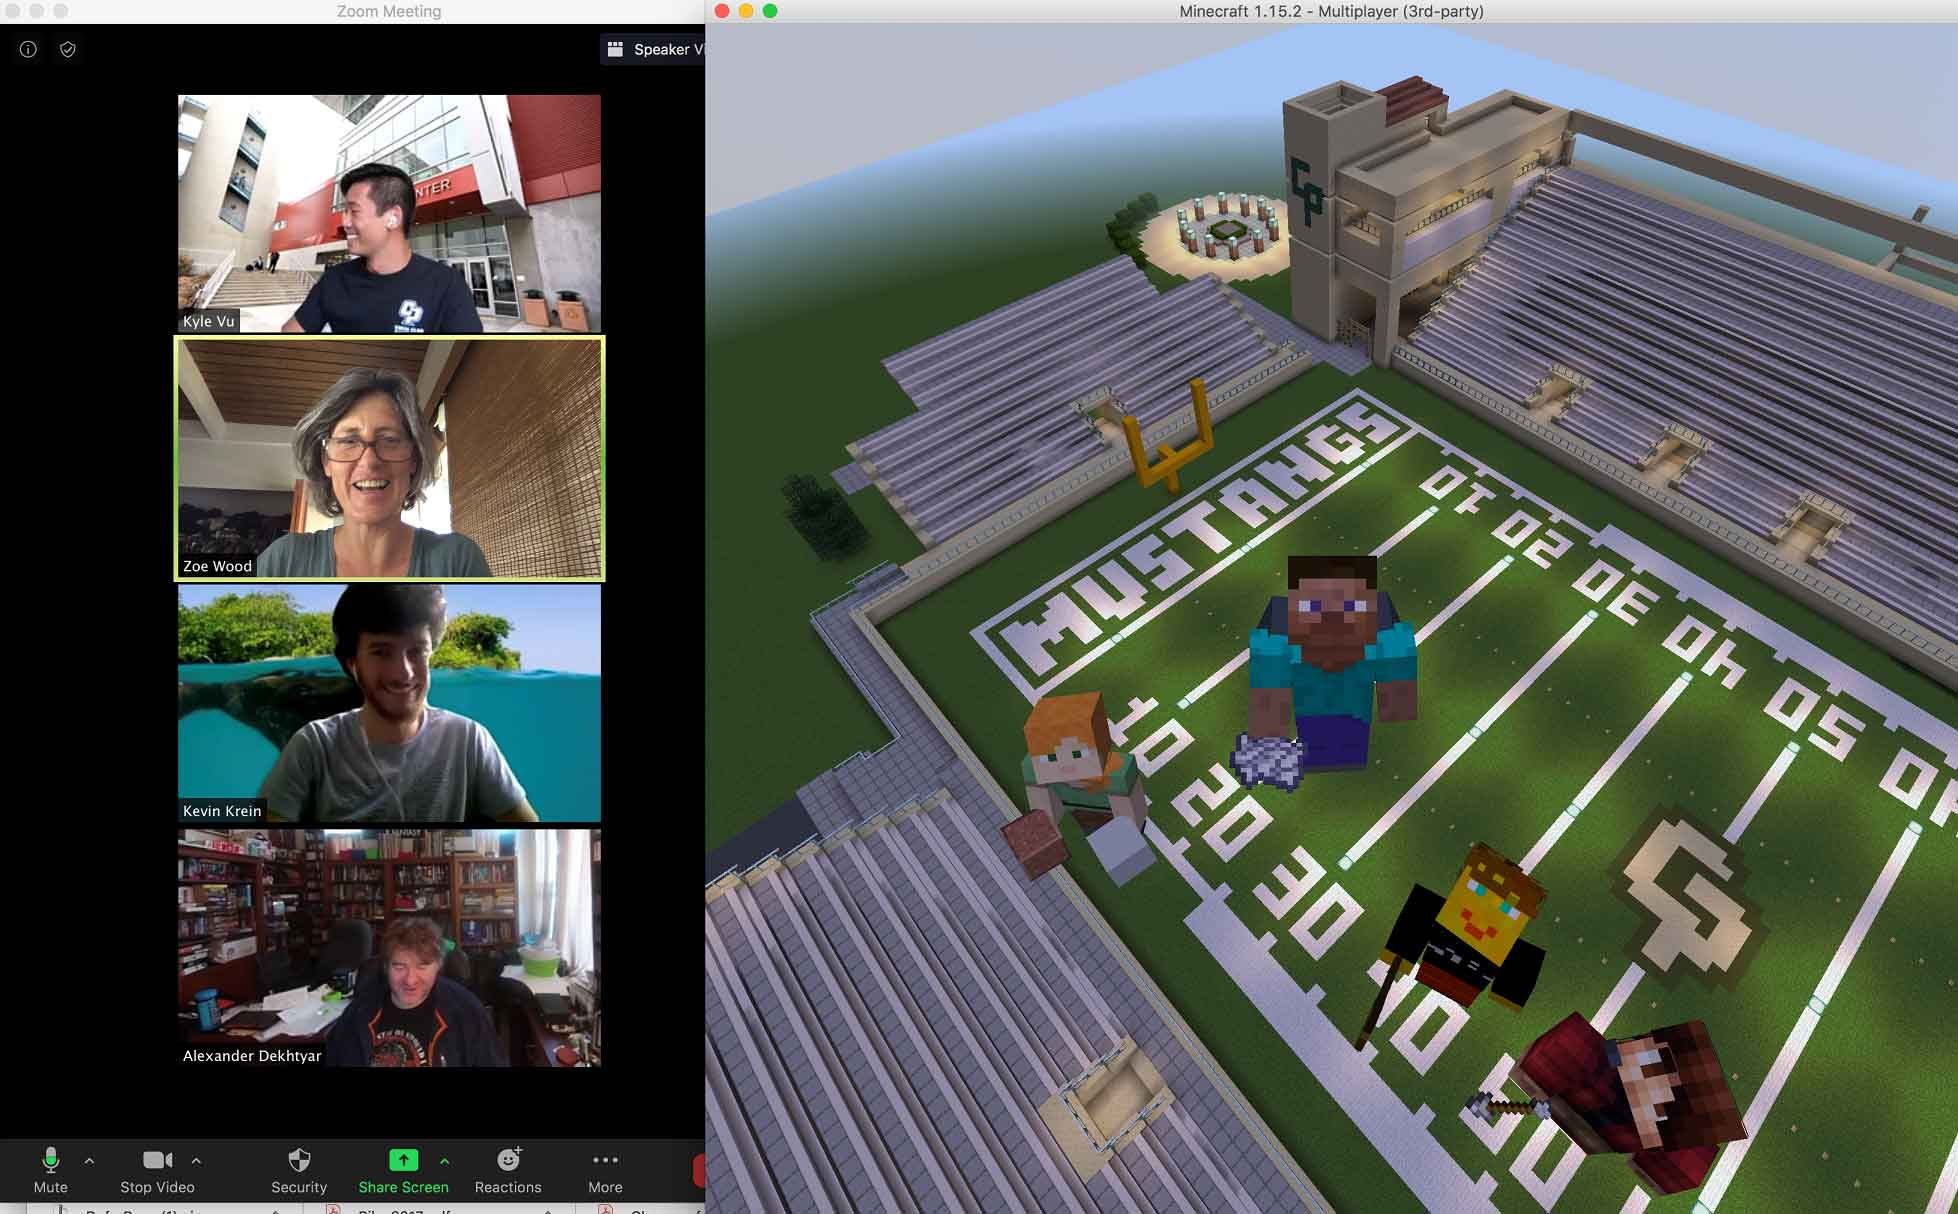 "Some of the creators of the Minecraft Cal Poly campus ""fly"" over Spanos Stadium with their avatars. Pictured are, top to bottom, Kyle Vu, Zoë Wood, Kevin Krein and Alex Dekhtyar."